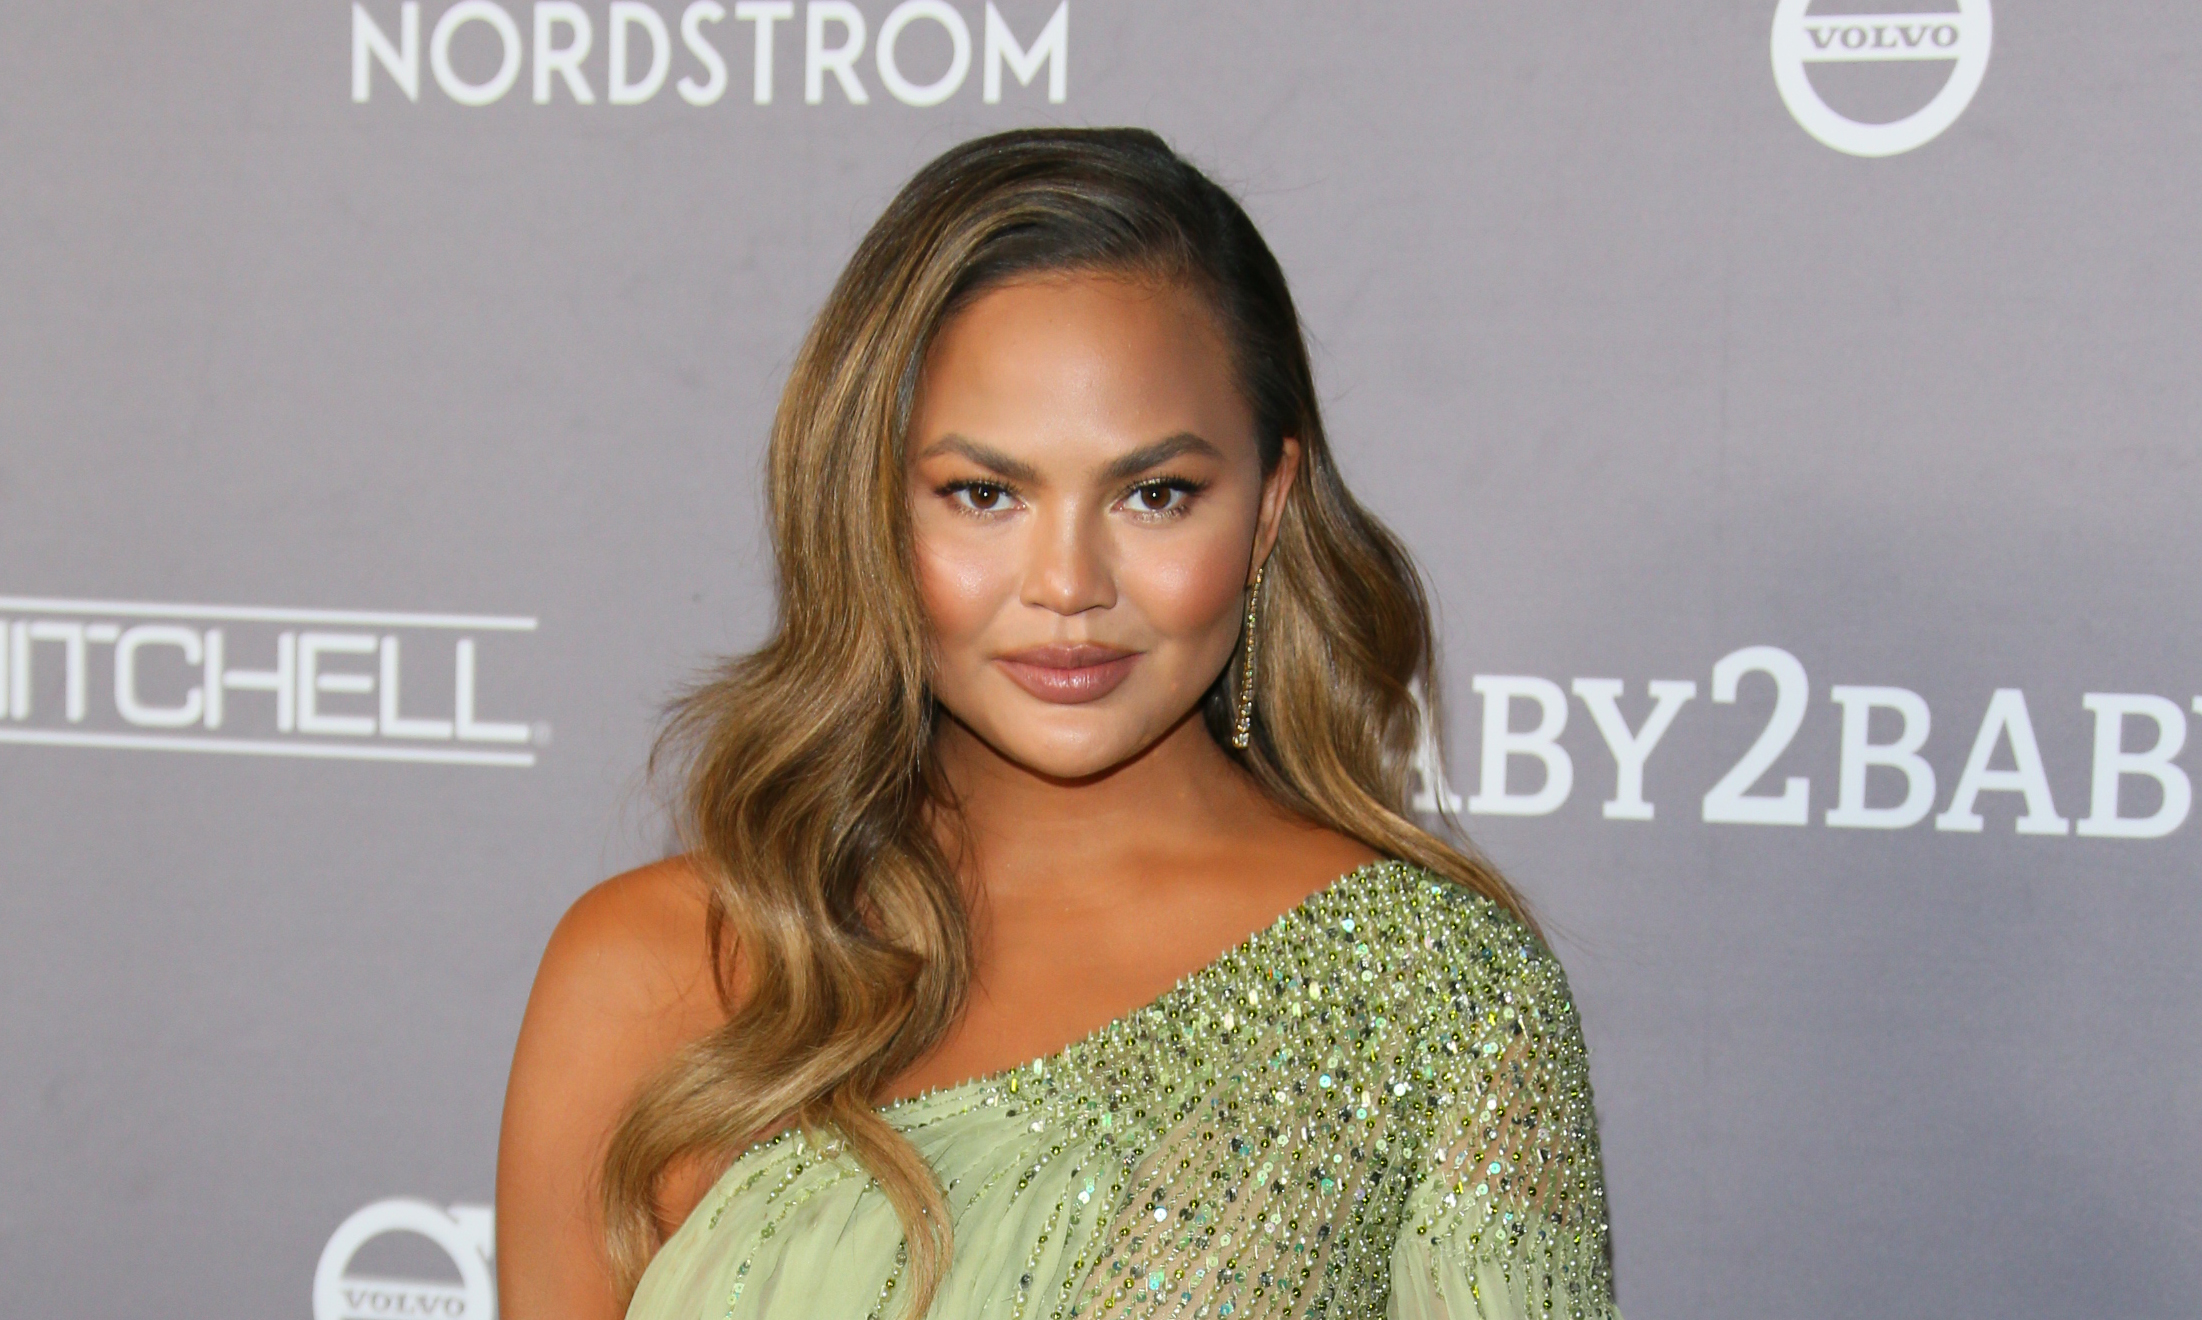 Chrissy Teigen to take restaurant industry by storm as she scouts for locations in Beverly Hills: 'About to disrupt some s**t!'